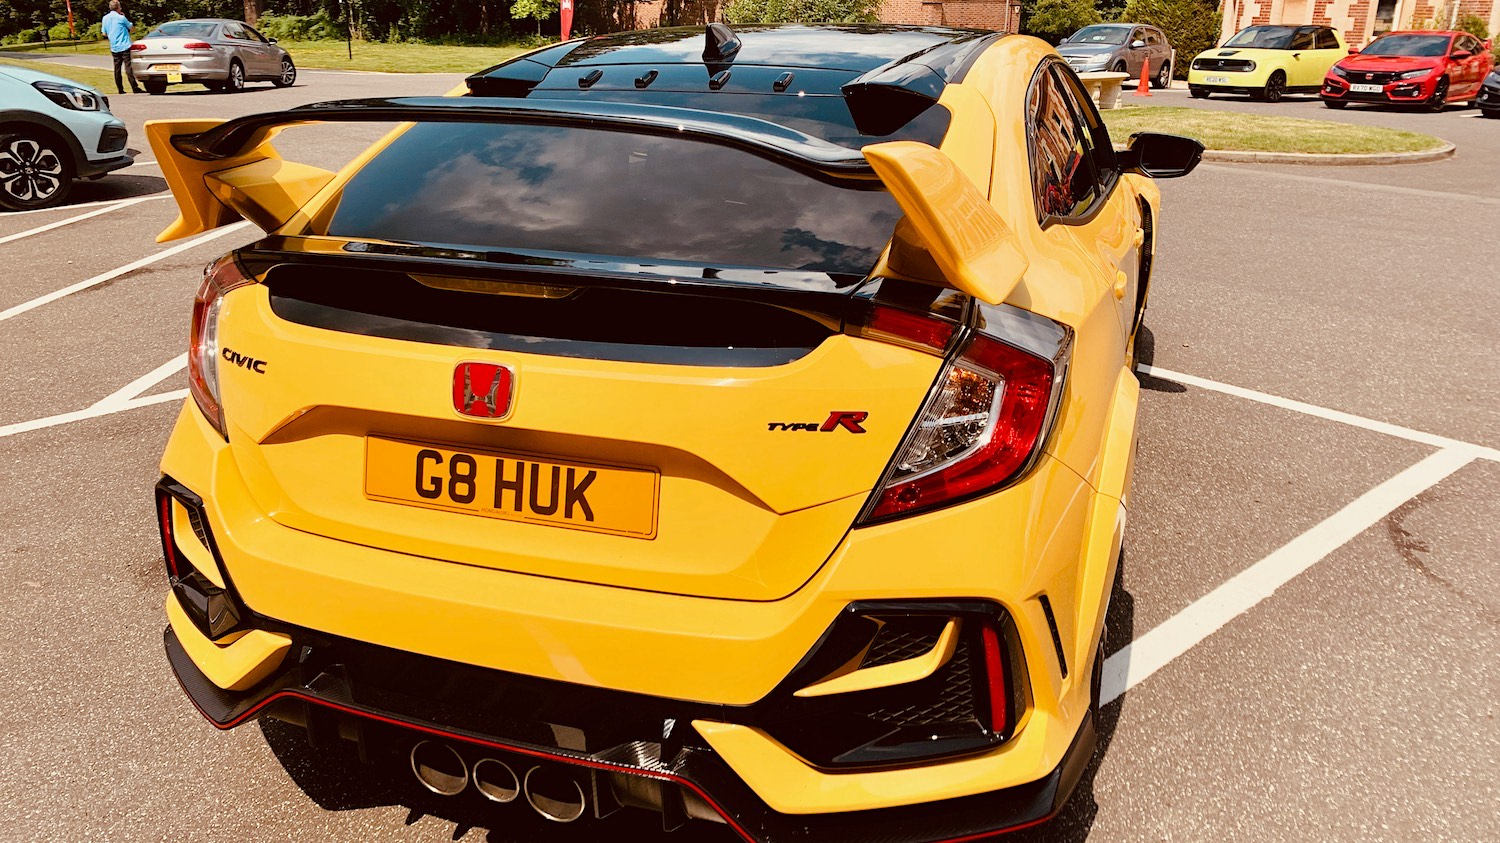 The Honda Type R - one of the last cars to be built in Swindon